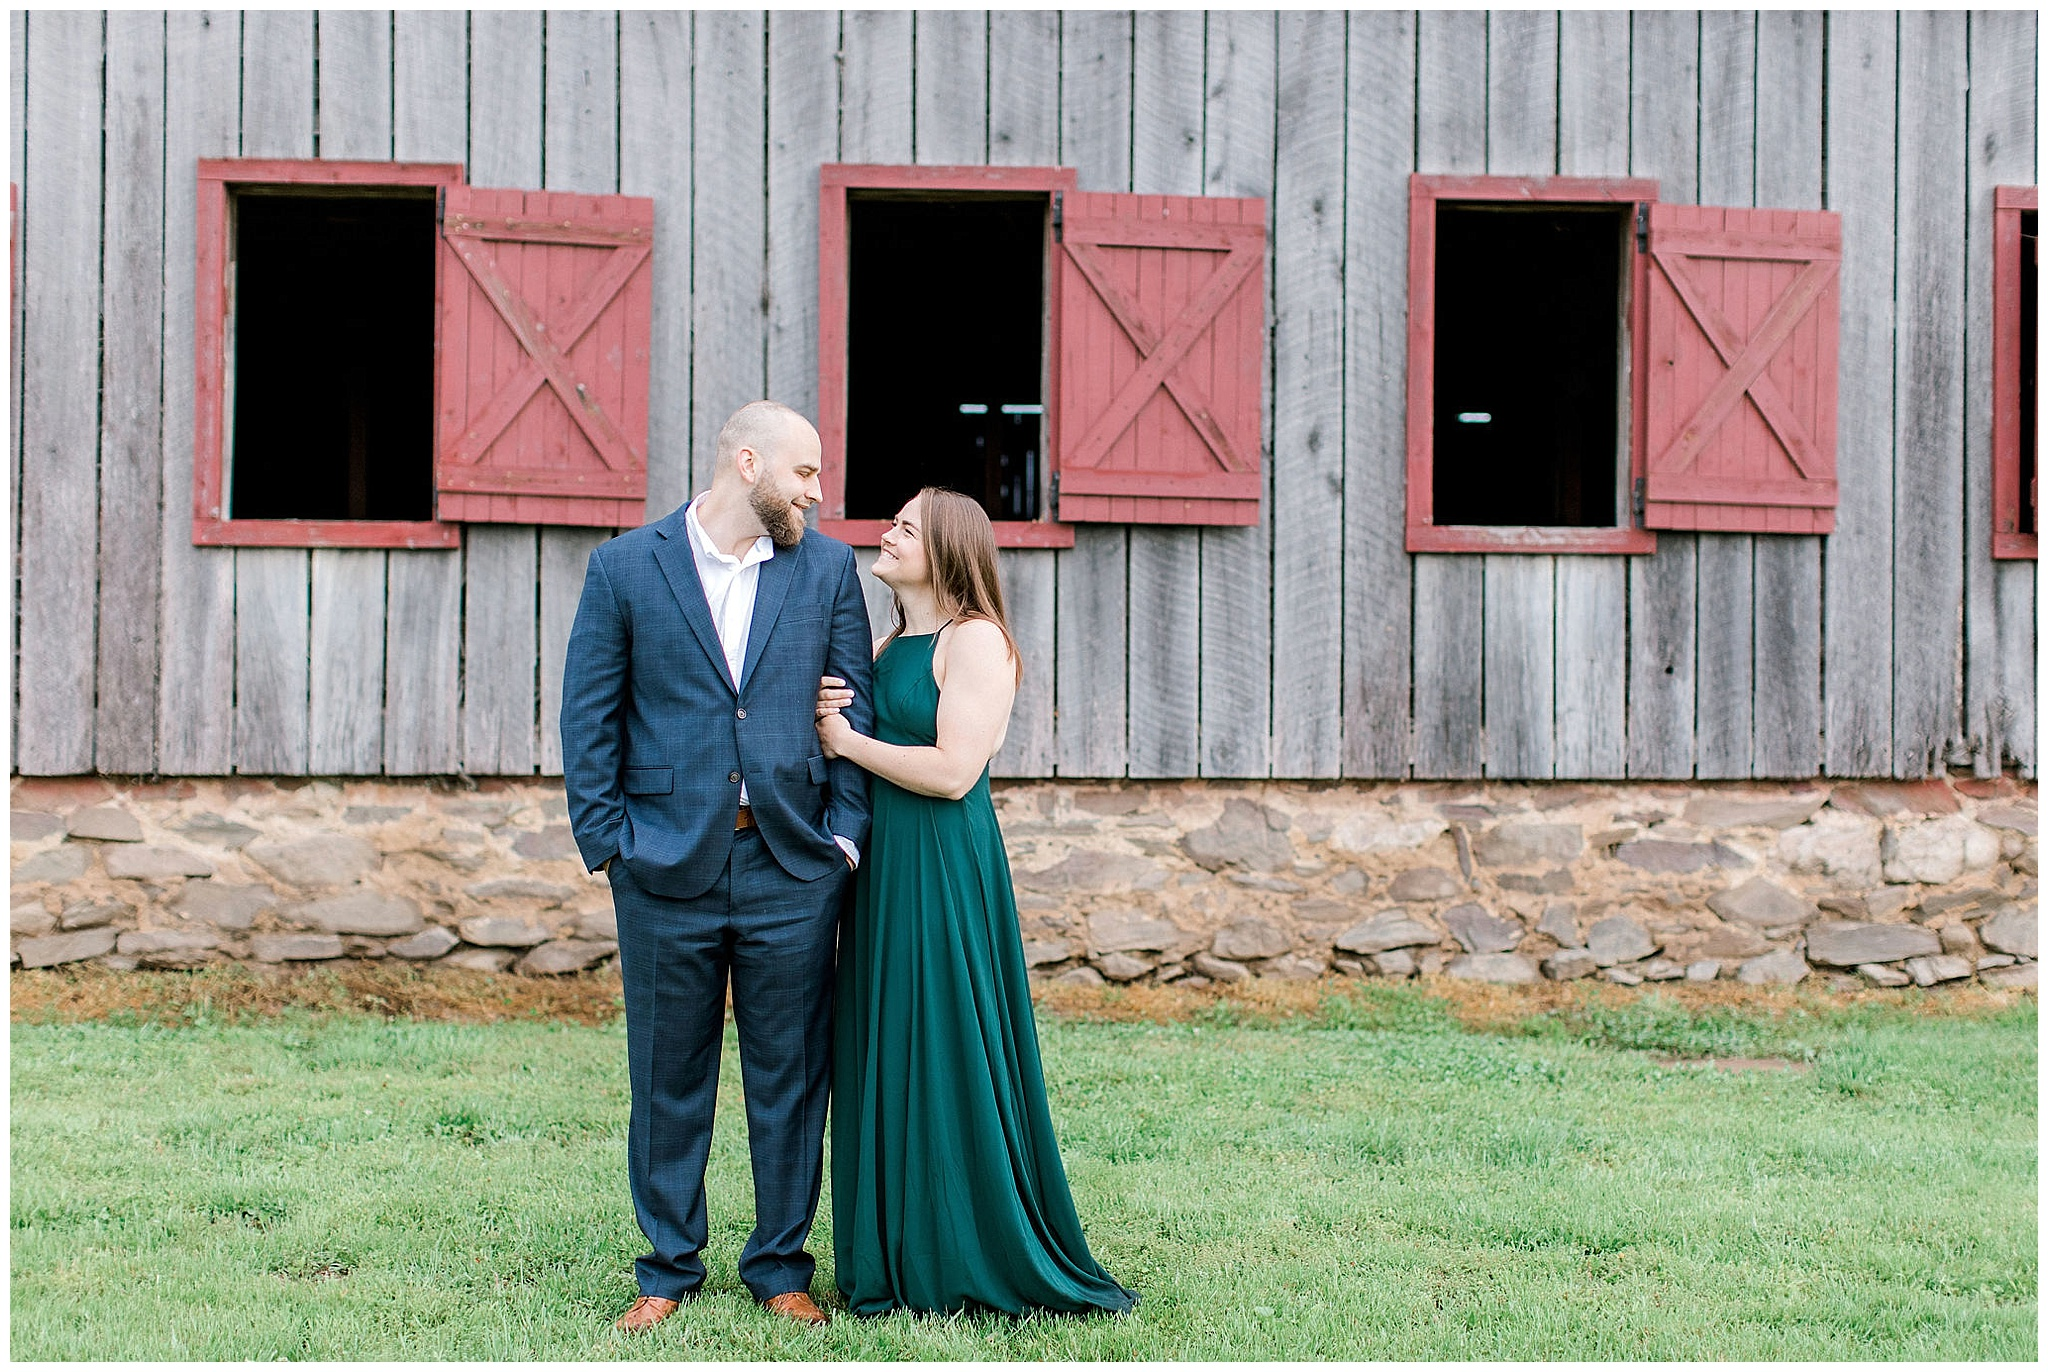 engagement photo at sylvandside farm in loudon county virginia, sylvanside farm, slyvanside farm wedding, slyvanside farm engagement, northern virginia wedding photographer, dc wedding photographer